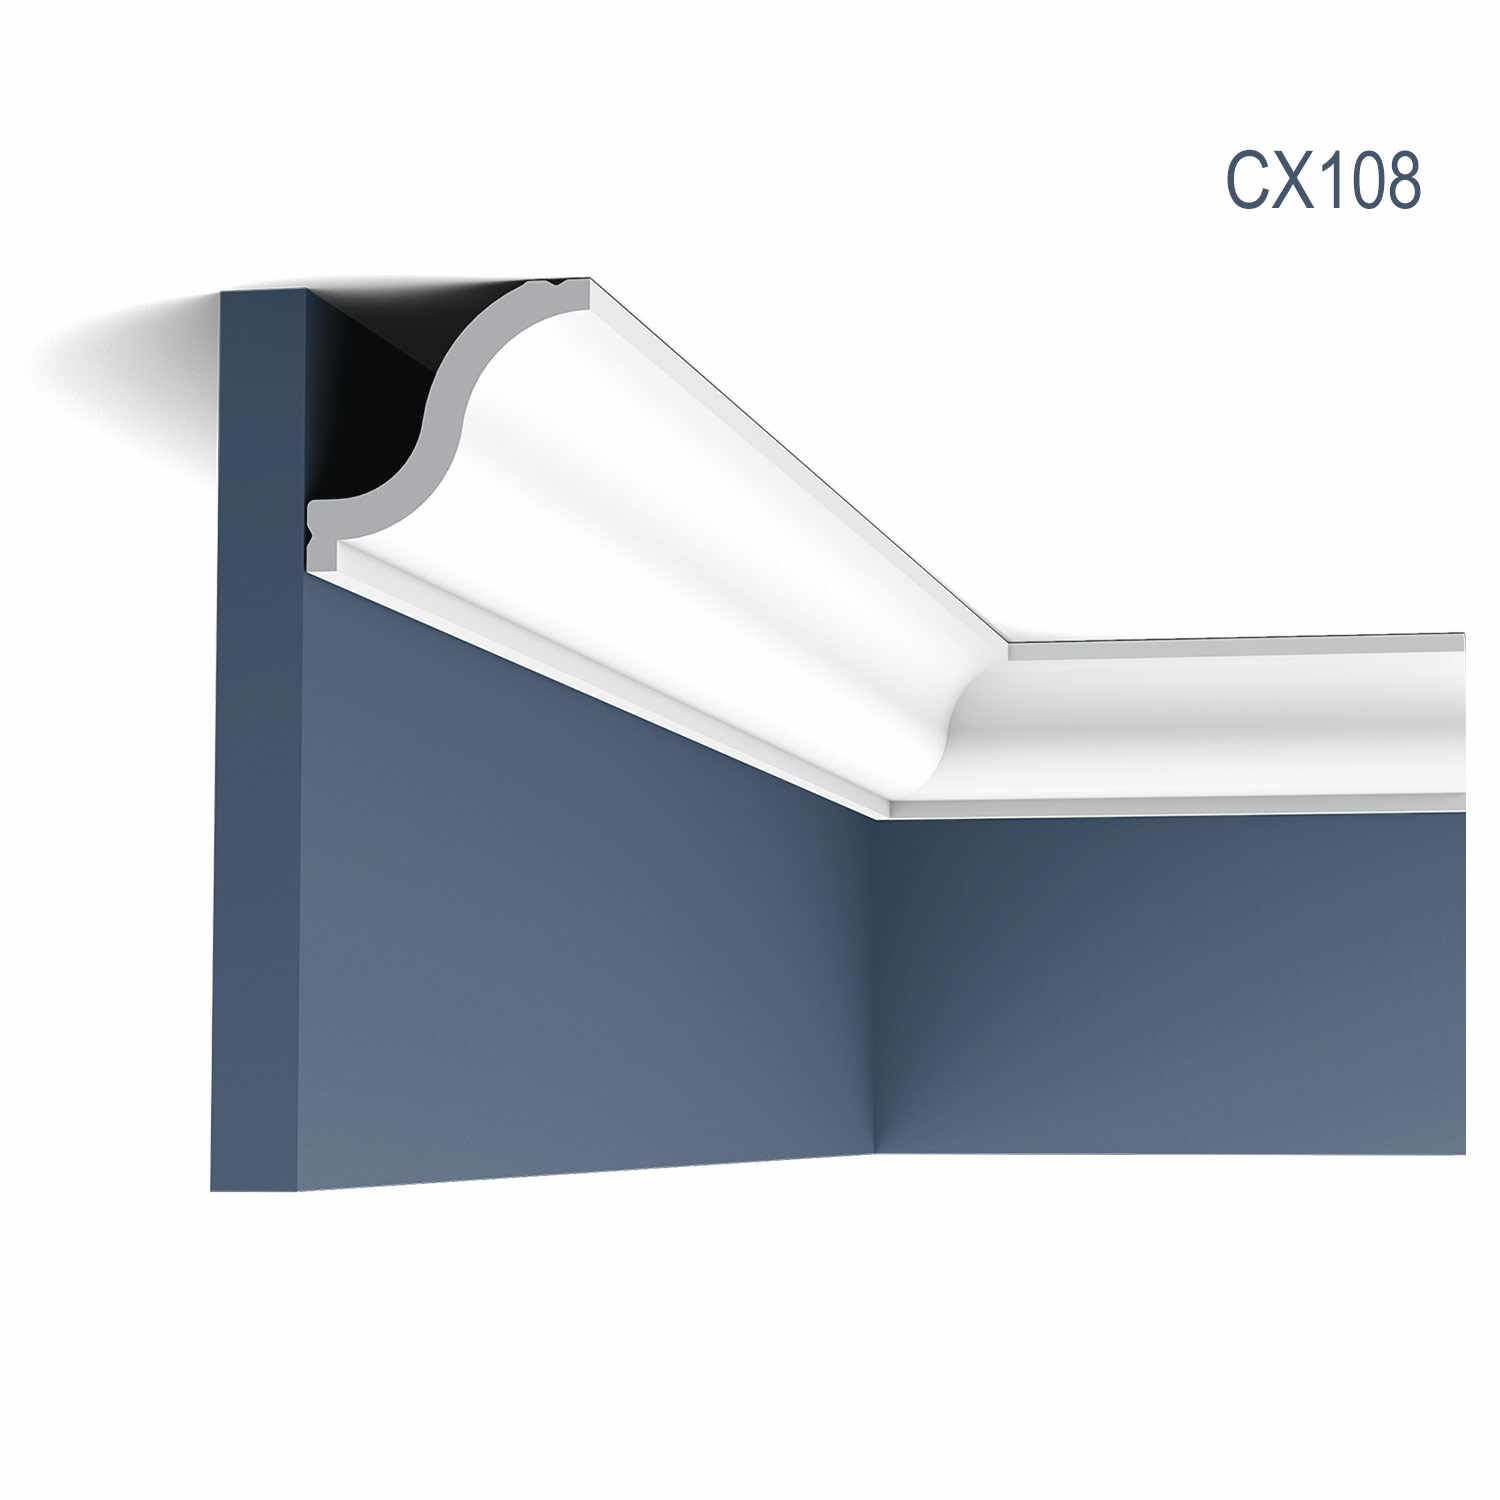 Cornisa Axxent CX108, Dimensiuni: 200 X 5.4 X 5.5 cm, Orac Decor